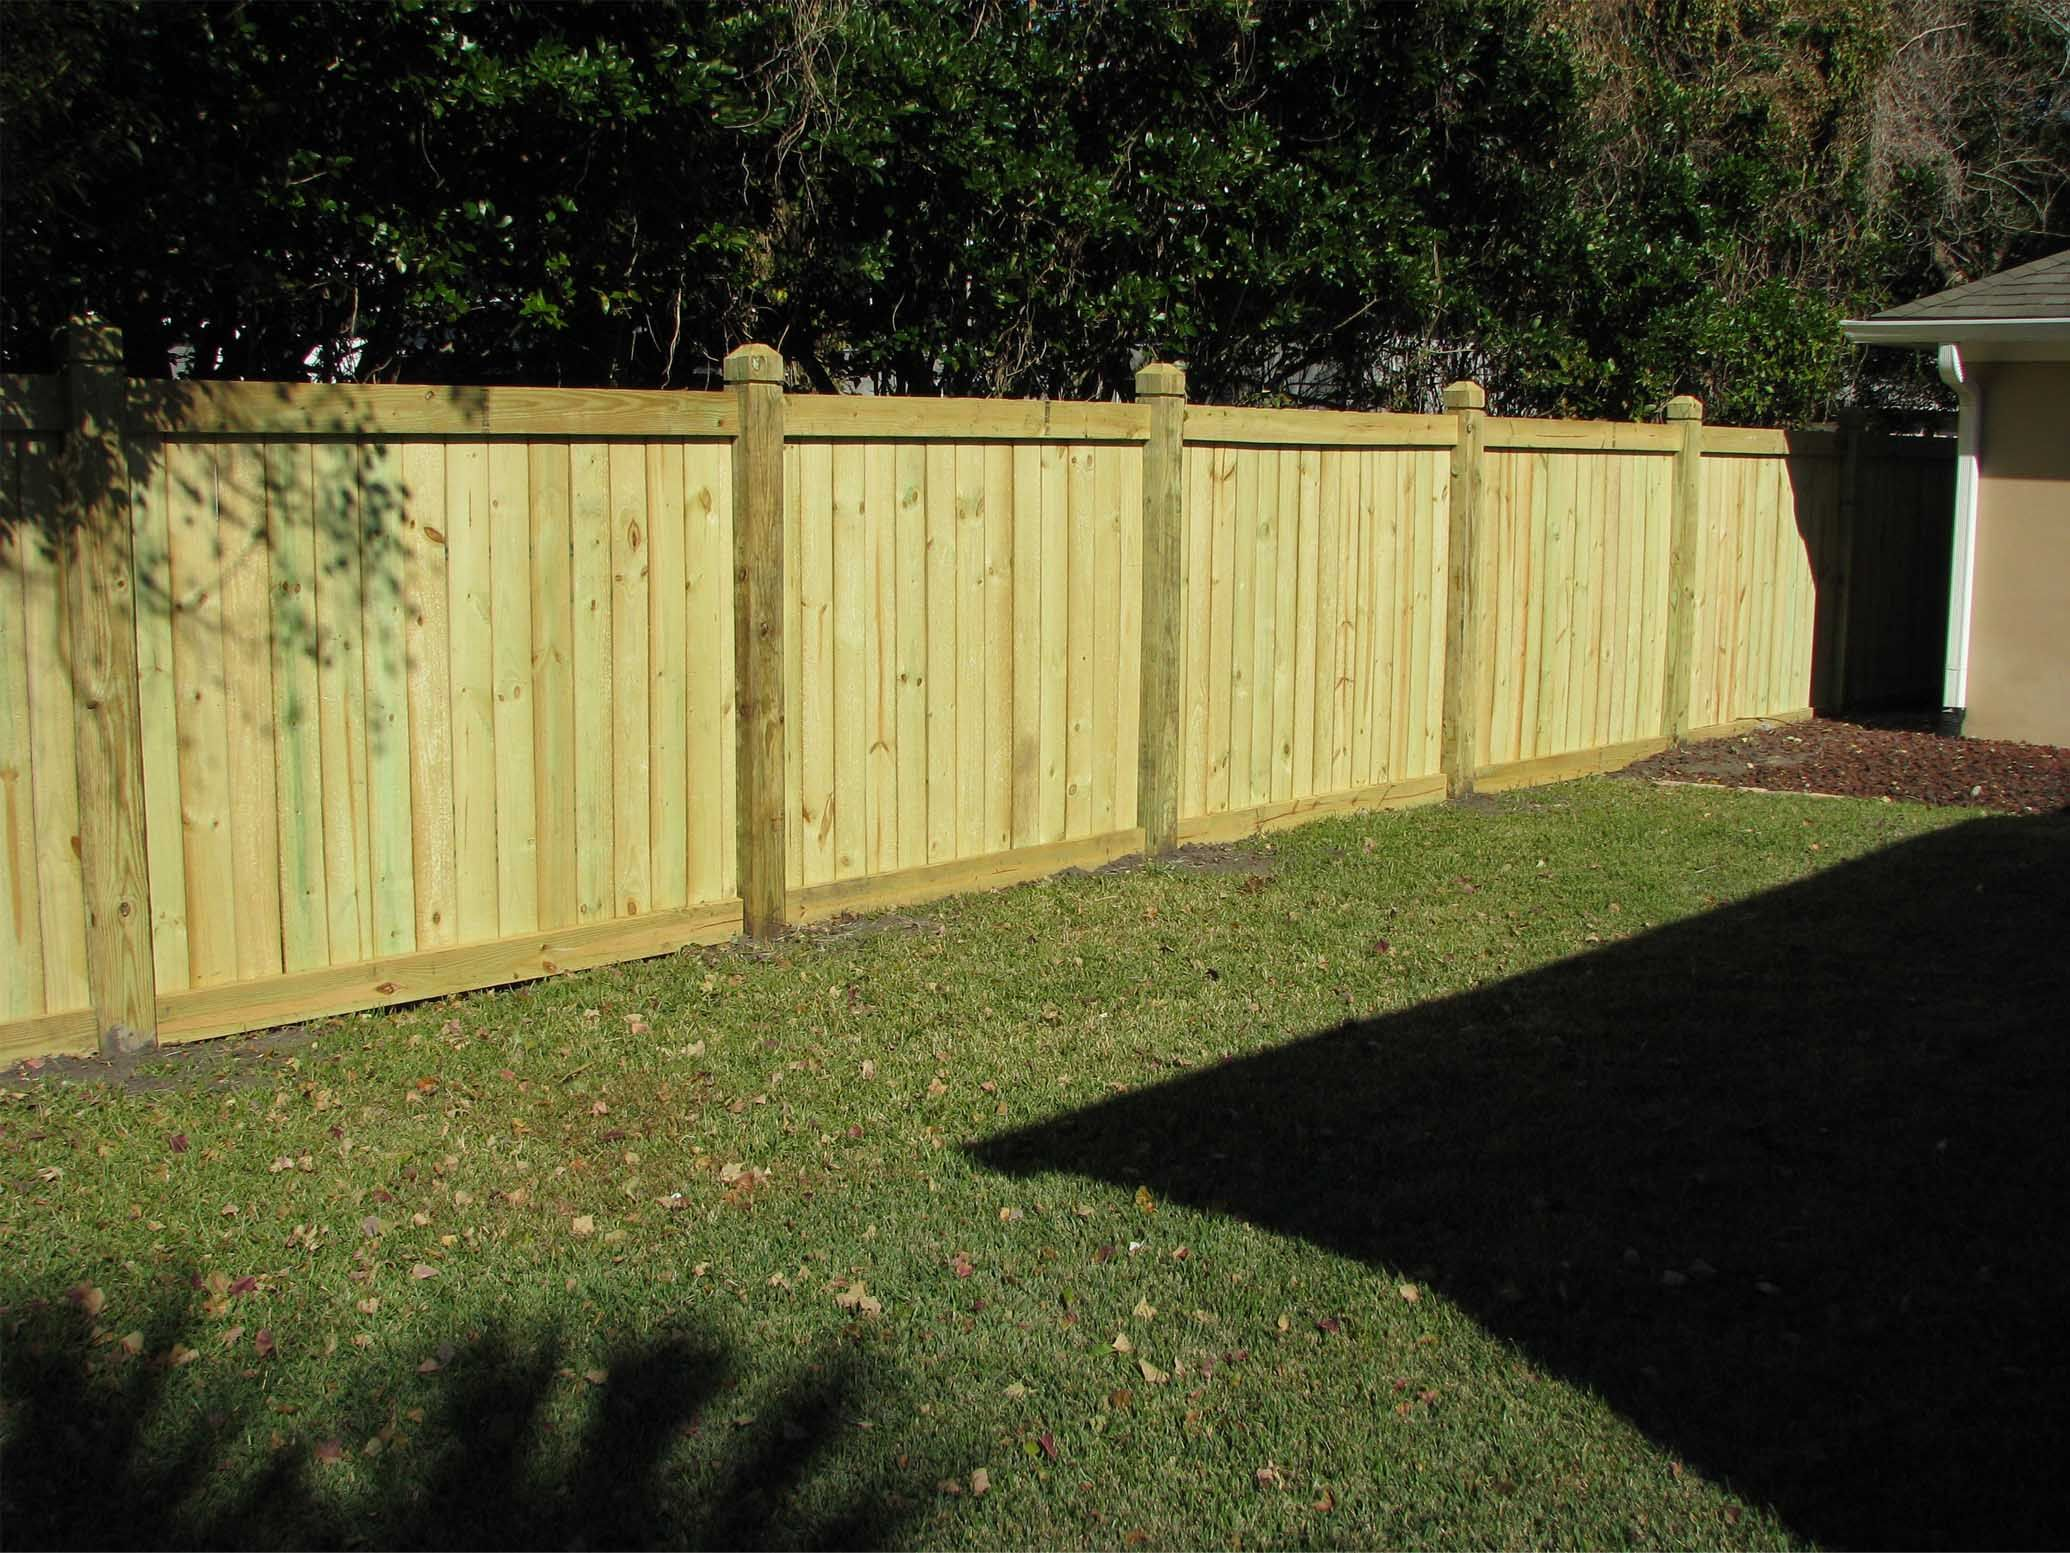 awesome good neighbor fence plans #2: good neighbor fence plans - Google Search